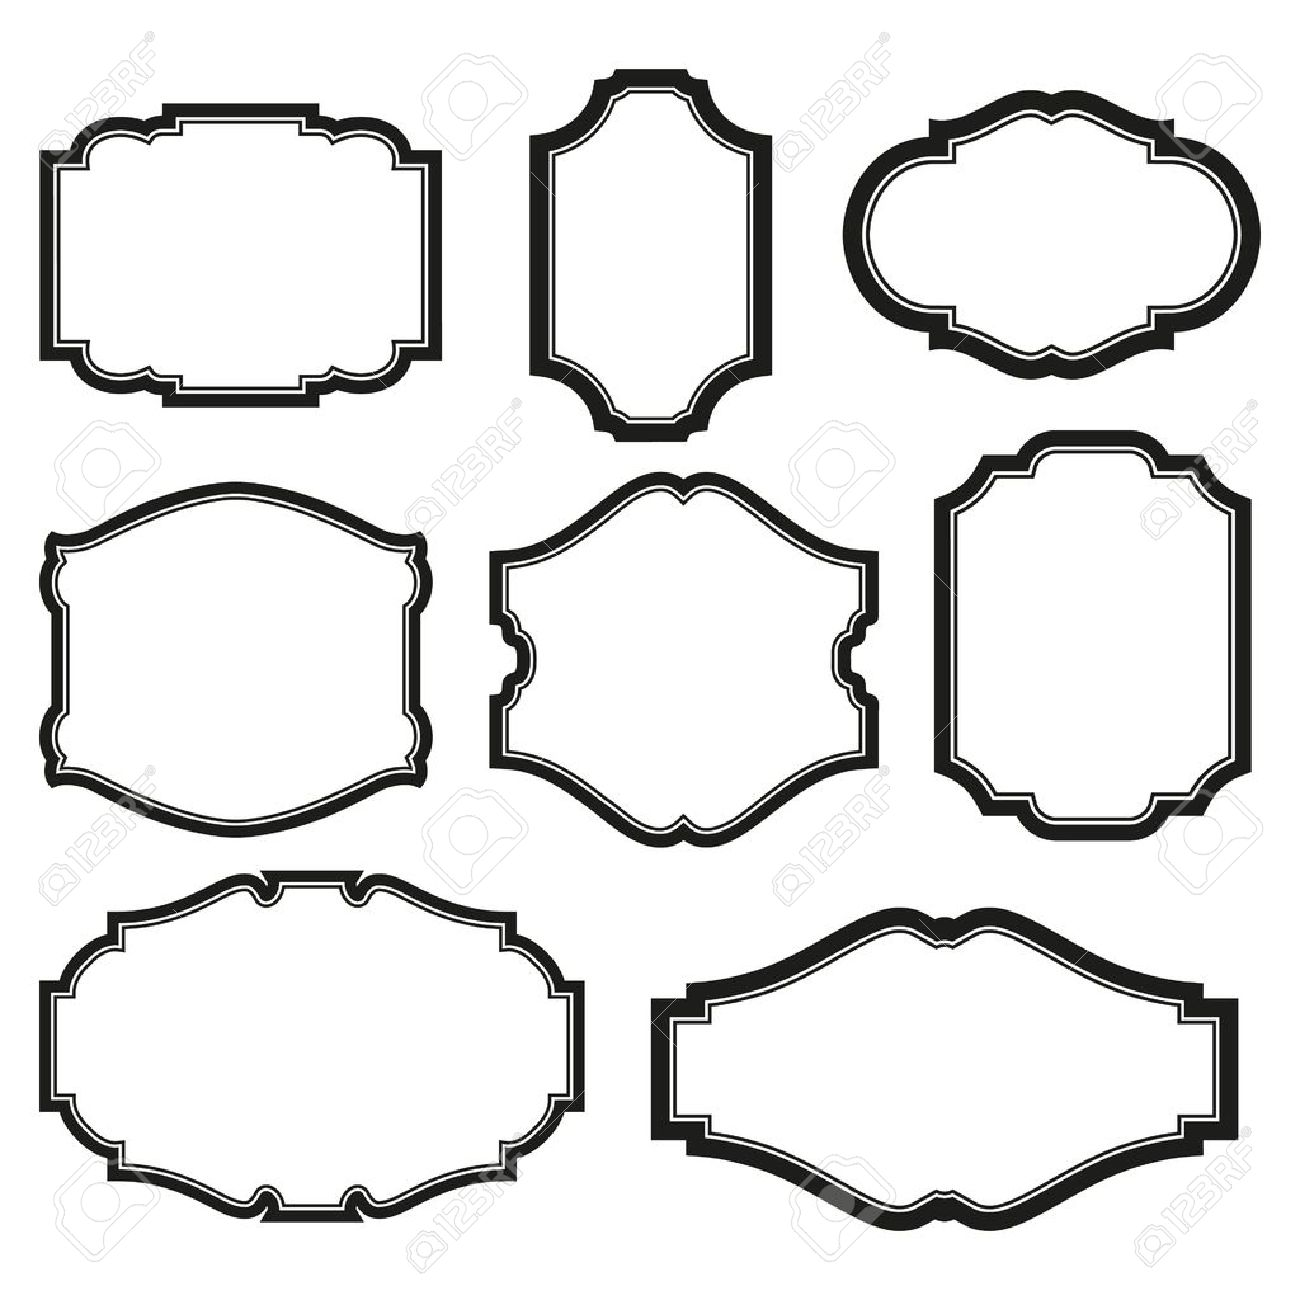 Baroque Simple Set Of Black Frames Isolated On White Royalty Free ...